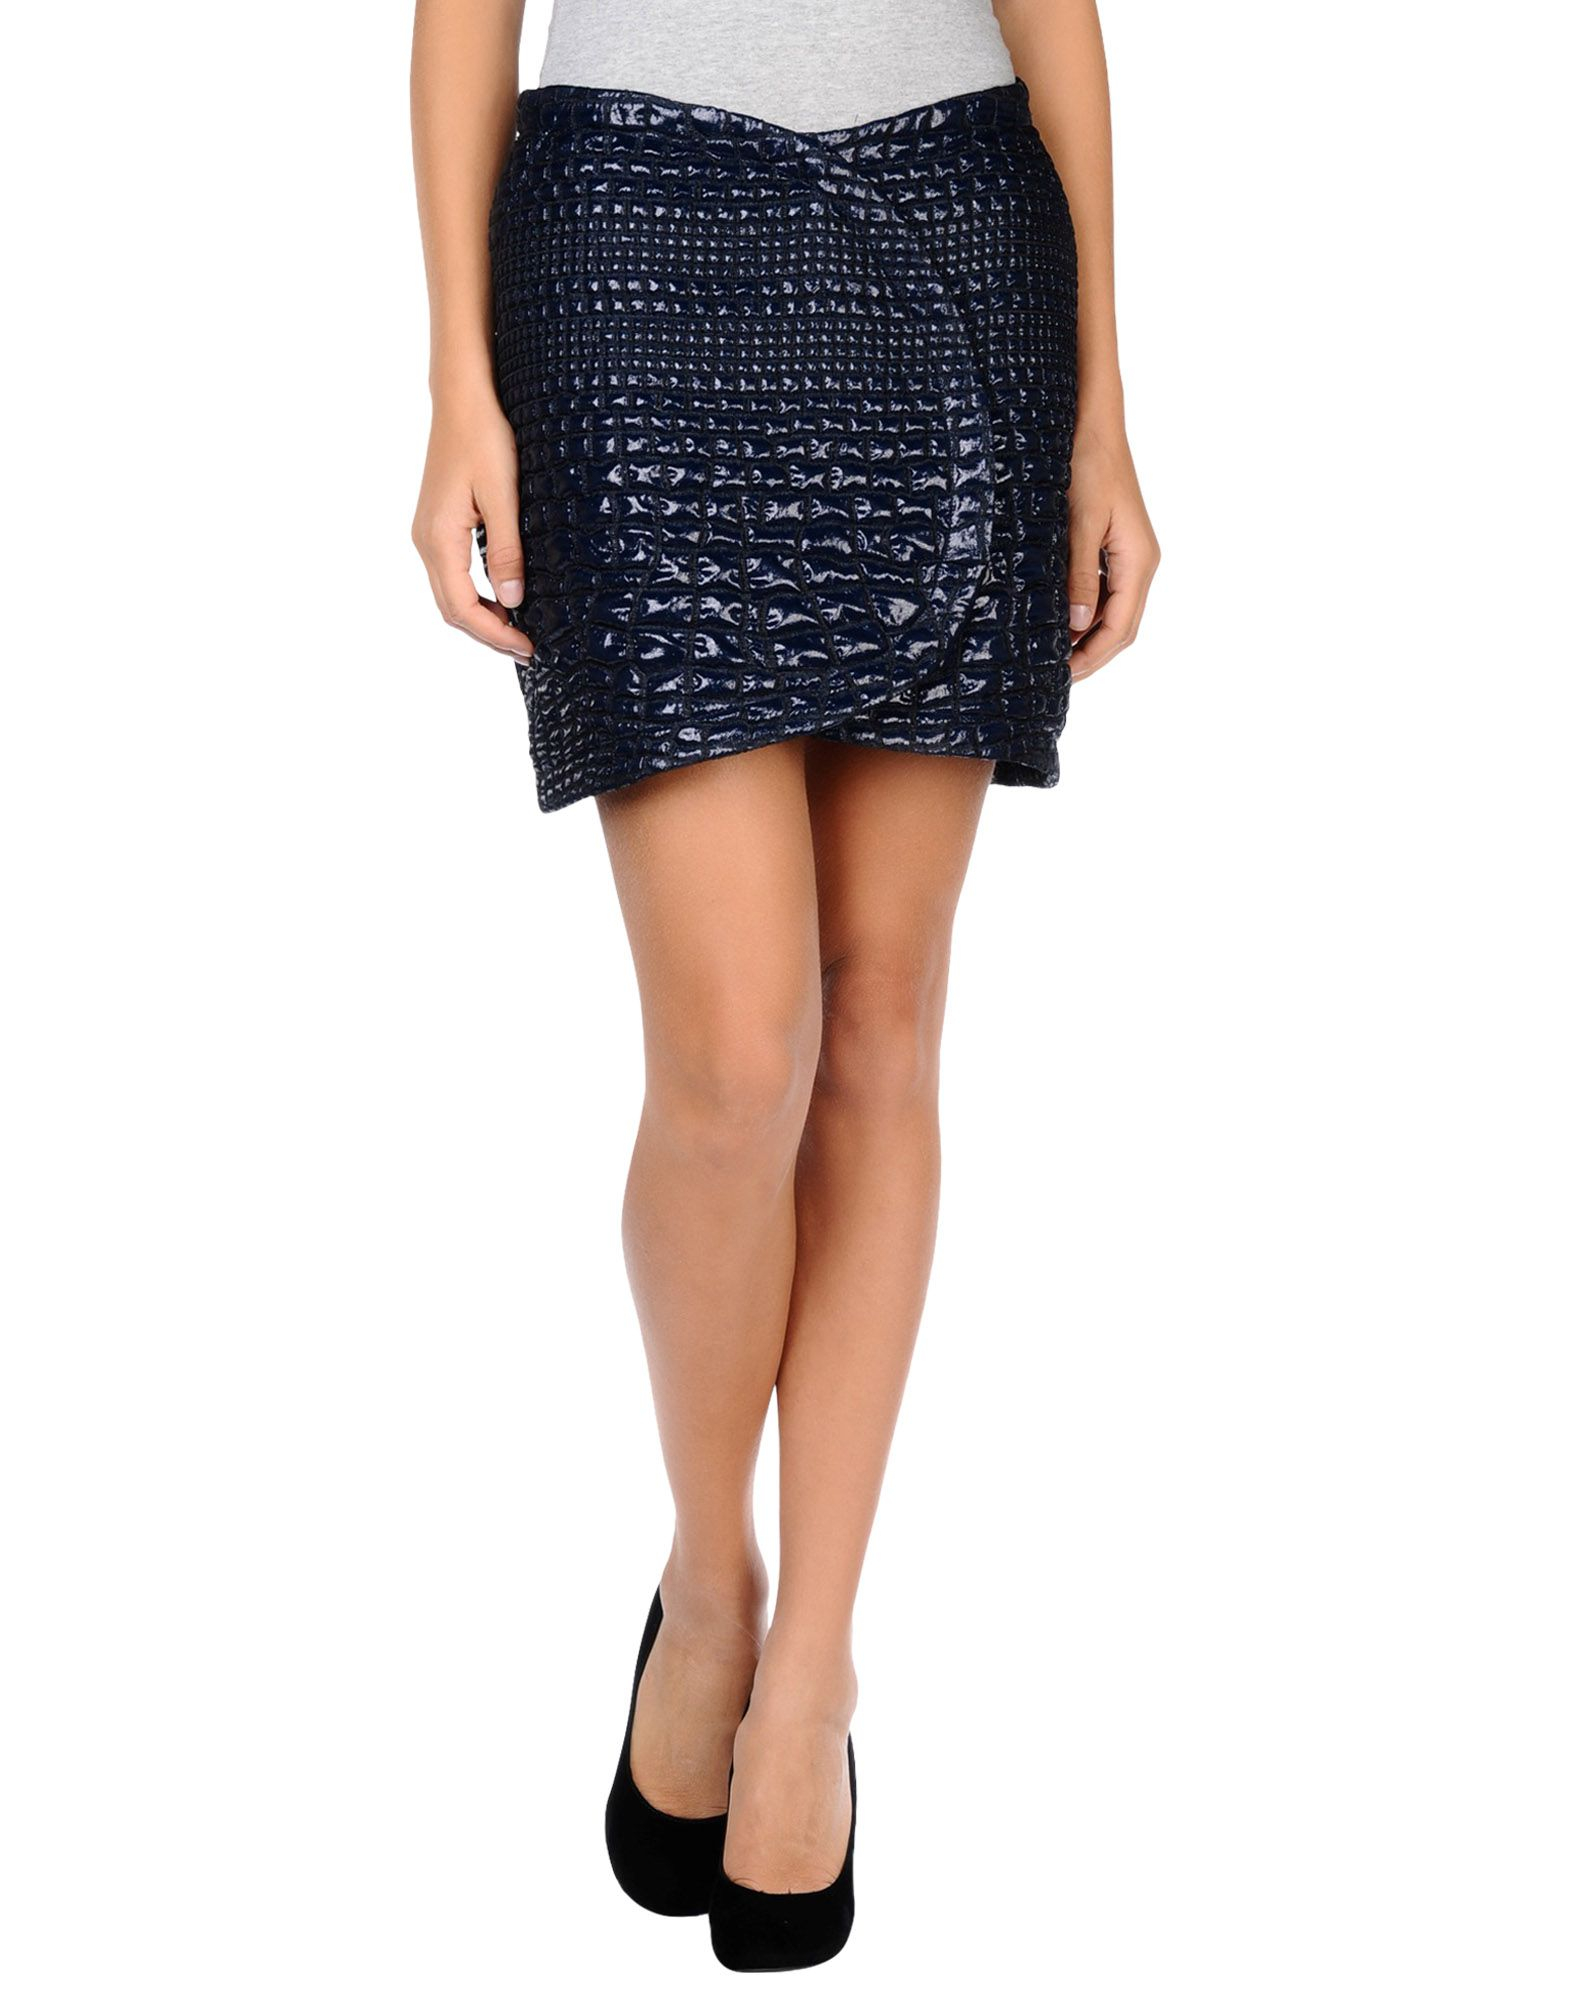 Find Blue mini skirts at ShopStyle. Shop the latest collection of Blue mini skirts from the most popular stores - all in one place. Skip to Content Self-Portrait Ruffled Checked Tweed Mini Skirt - Blue $ Get a Sale Alert Free Shipping.